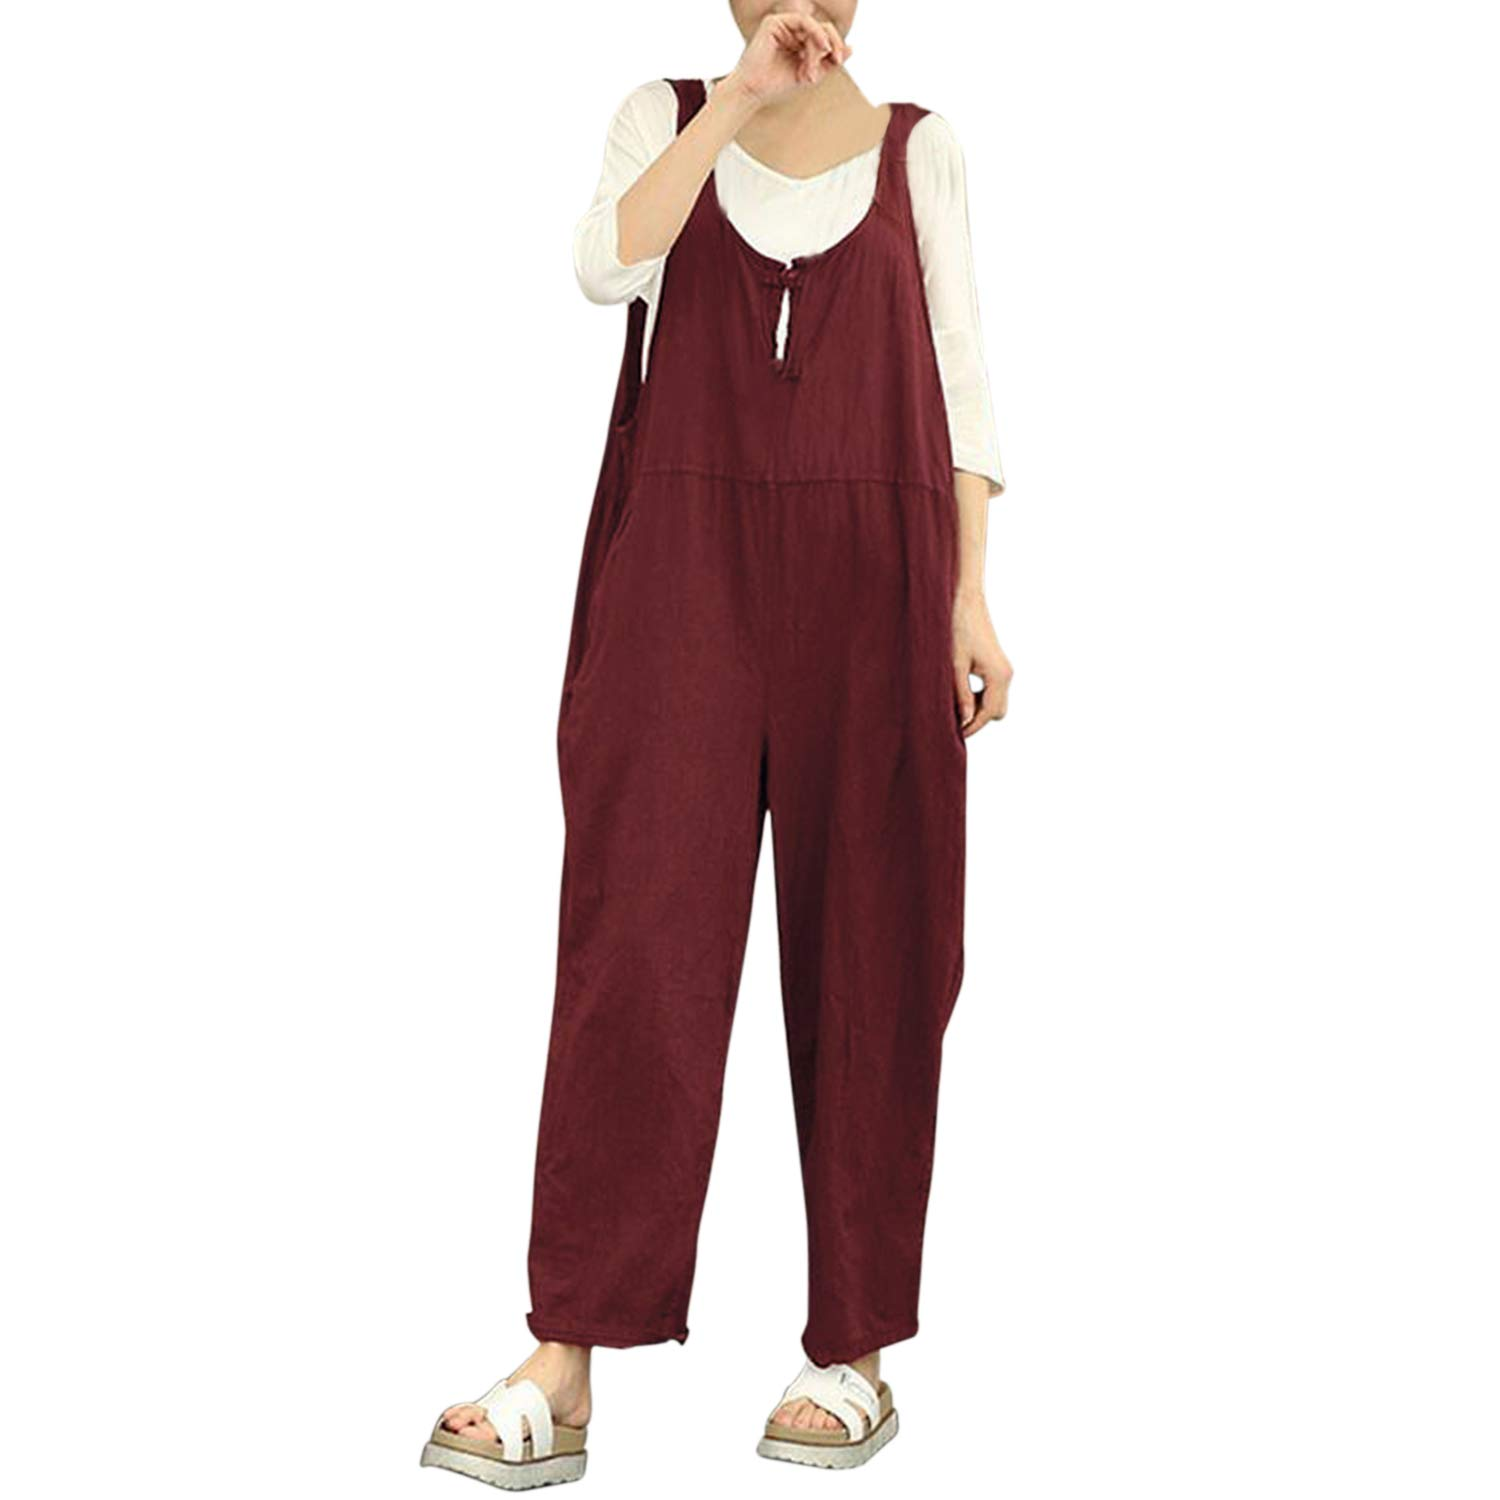 Fasion Story Women Casual Jumpsuit Overall Pants Baggy Wide Leg Cropped Trouser